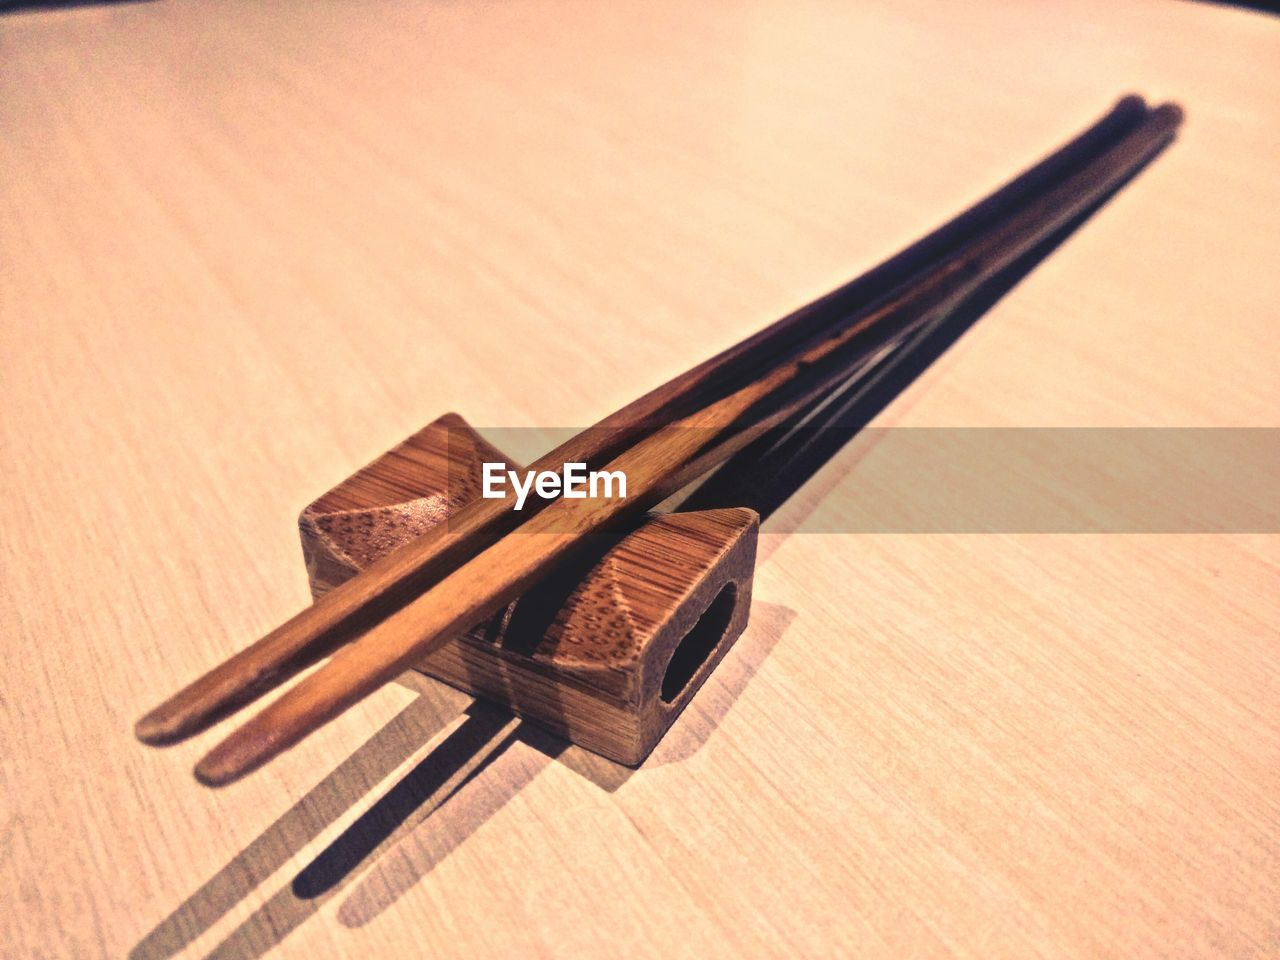 wood - material, indoors, still life, no people, table, close-up, high angle view, brown, chopsticks, kitchen utensil, focus on foreground, eating utensil, writing instrument, wood, metal, spoon, shadow, pattern, equipment, pencil, temptation